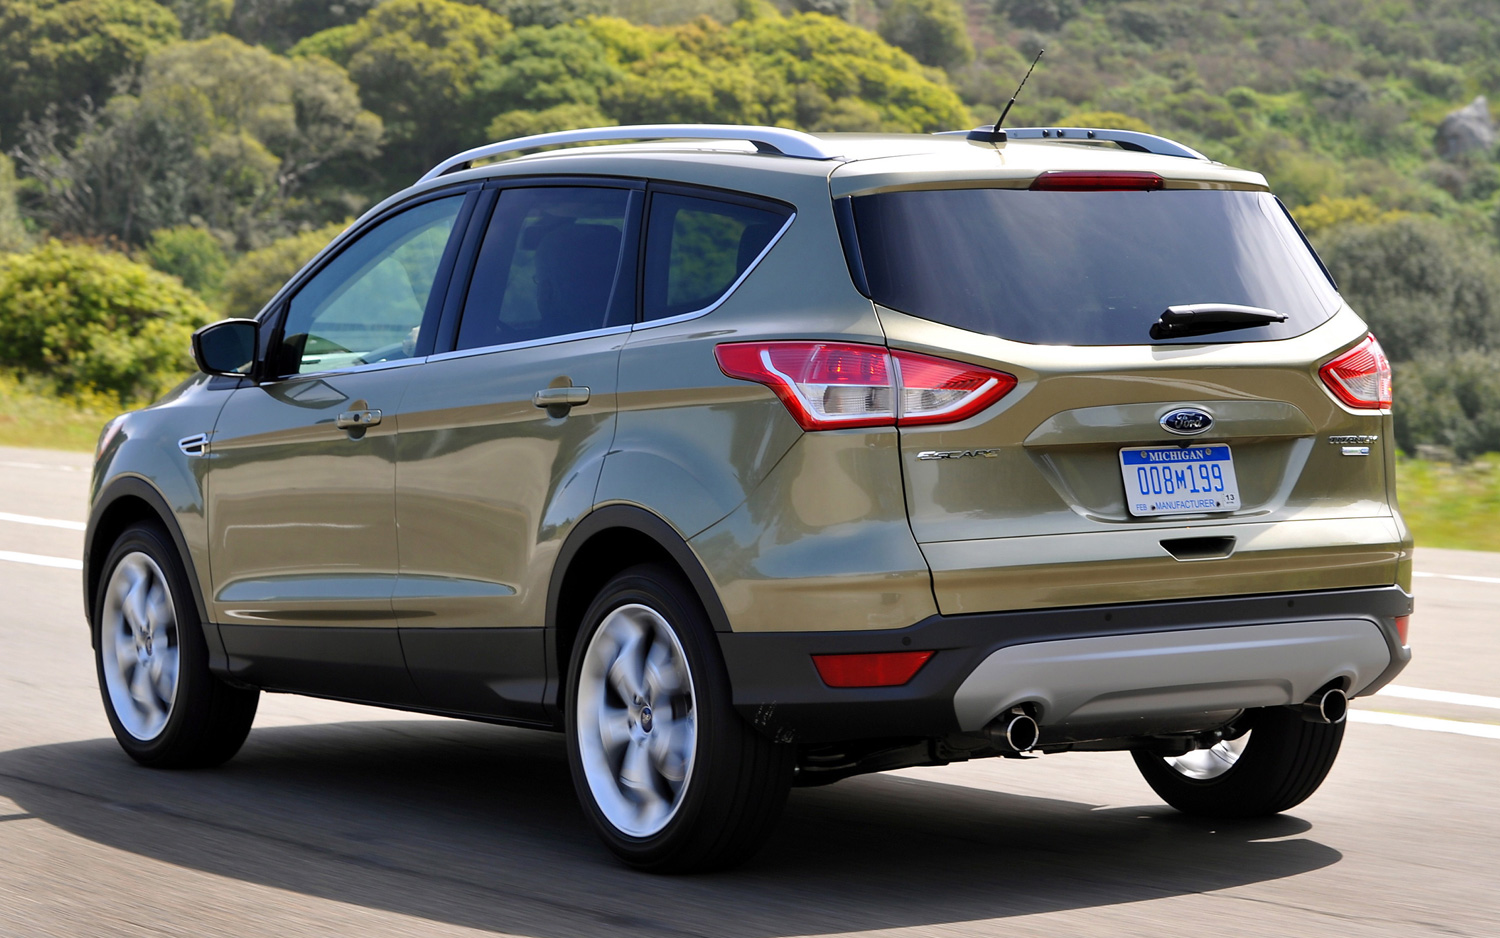 ford escape information and reviews world of cars. Black Bedroom Furniture Sets. Home Design Ideas